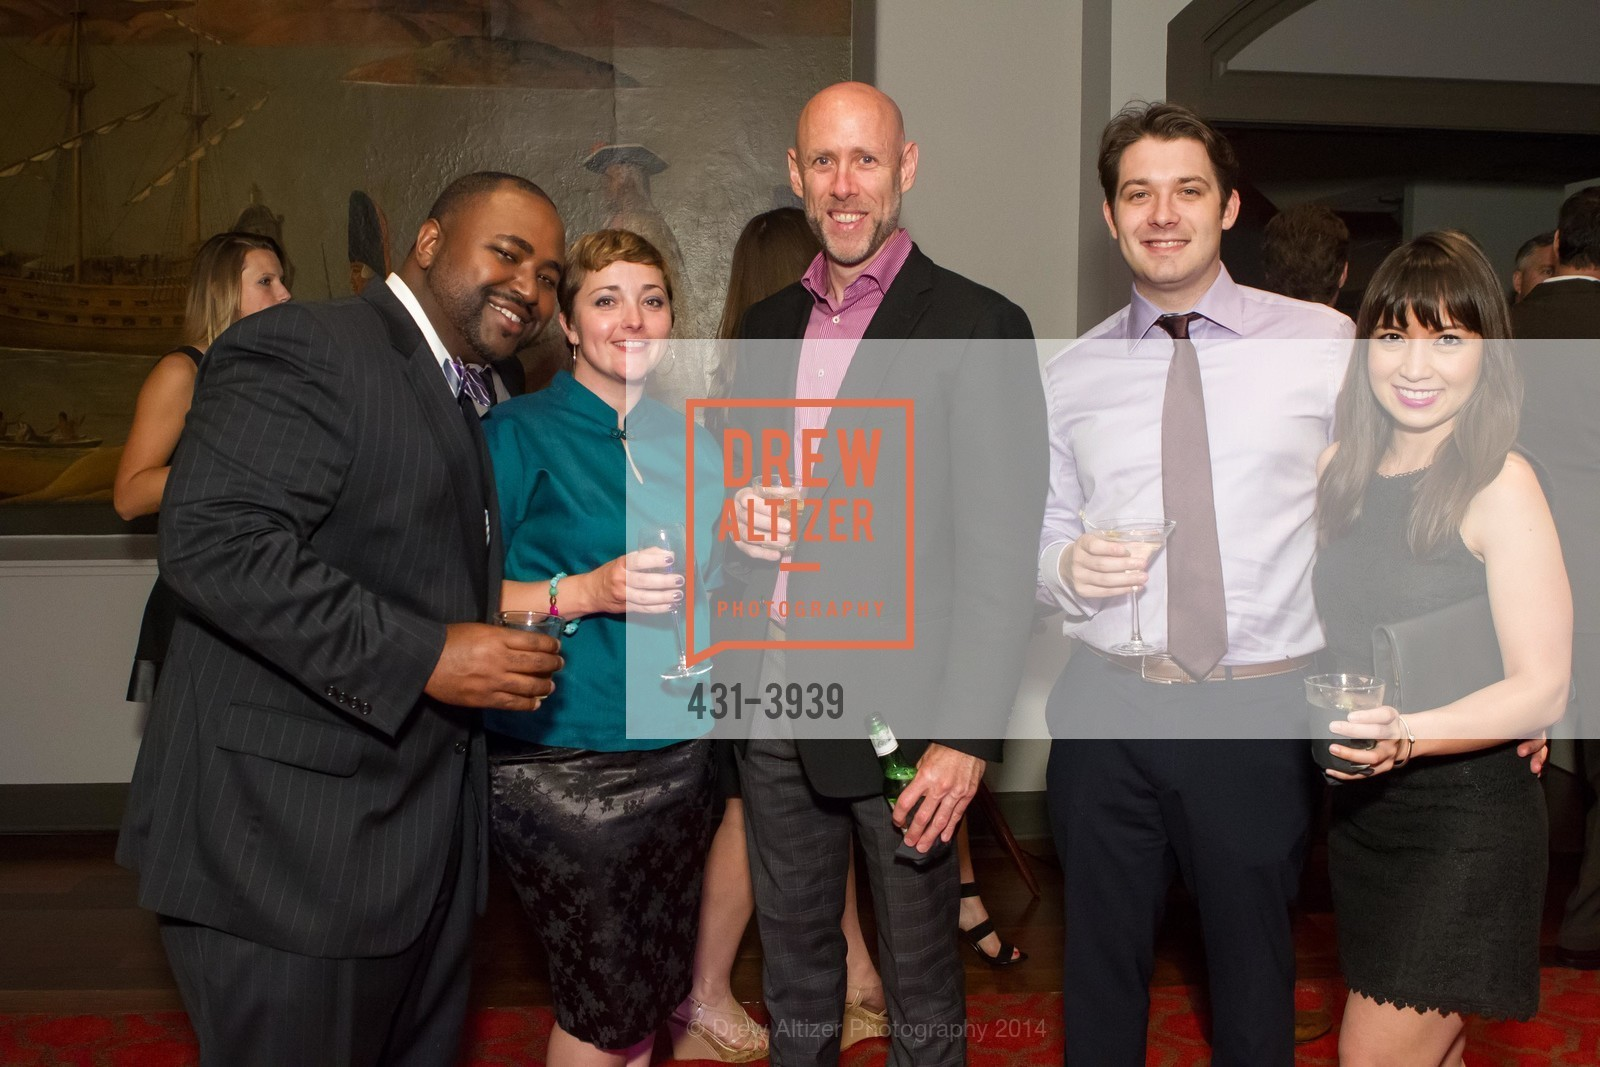 Stafford Jacobs, Melissa Jacobs, Craig Peters, Garret Spiecker, Photo #431-3939